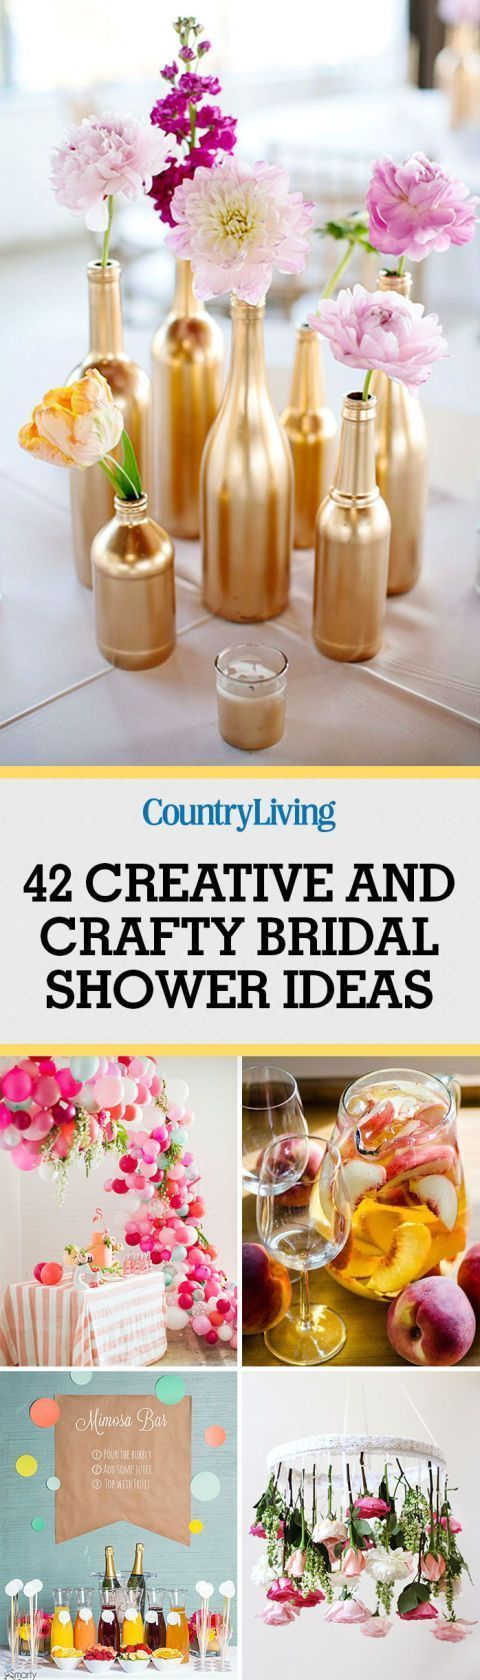 55 Creative Bridal Shower Ideas That Are